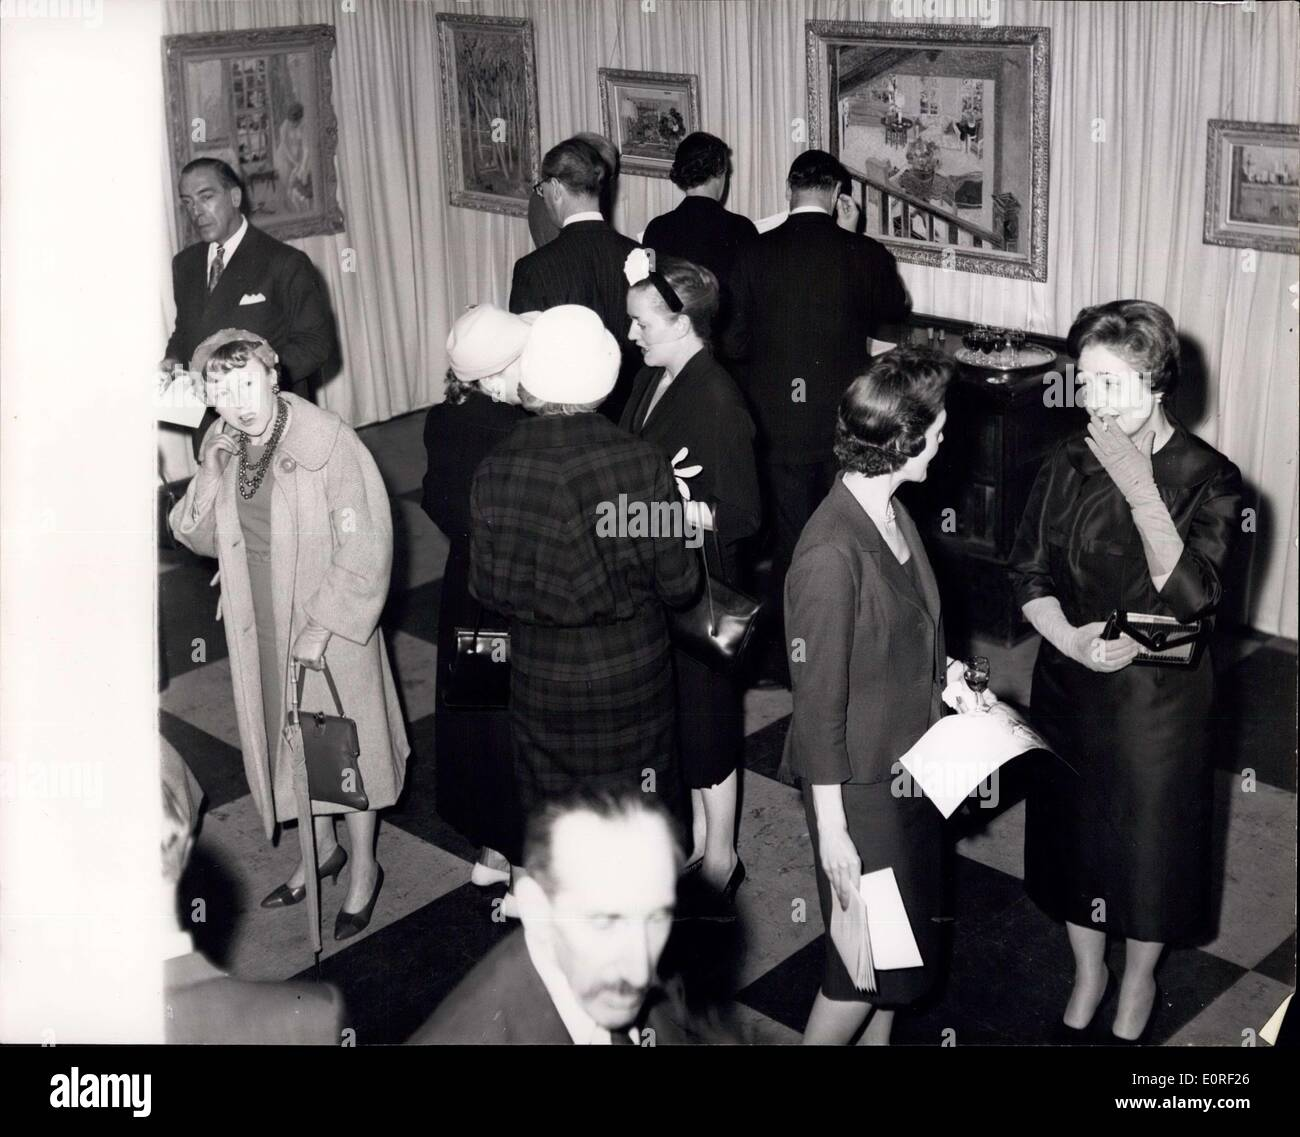 Apr. 22, 1959 - Lilian Mackendrick exhibition in London: A general view of the scene at a private view of paintings Stock Photo